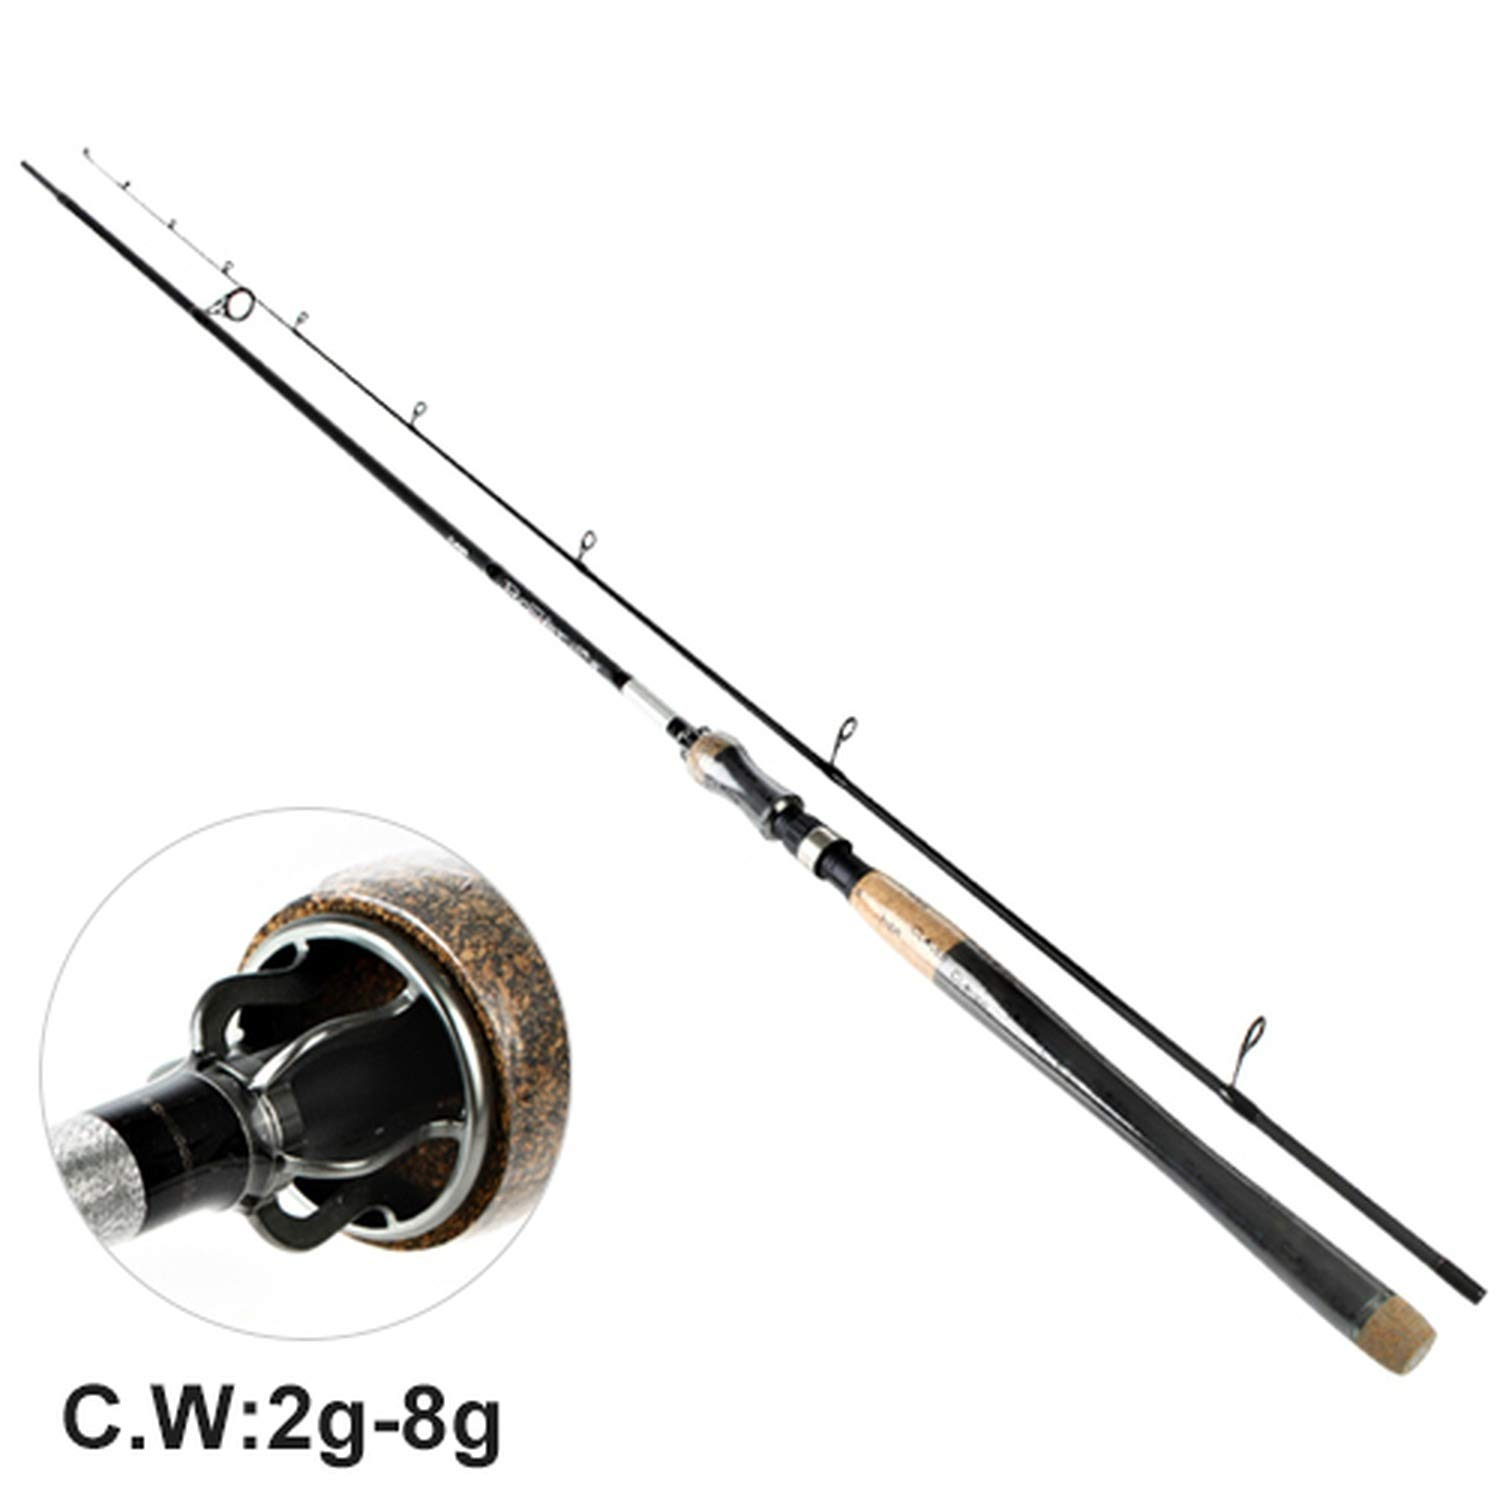 99% Carbon Lure Fishing Rod 5 colors 2.1M 2.4M 2.7M 2 Section Lure Weight 240g Spinning Fishing Rod Travel Rod,Black,2.1 m